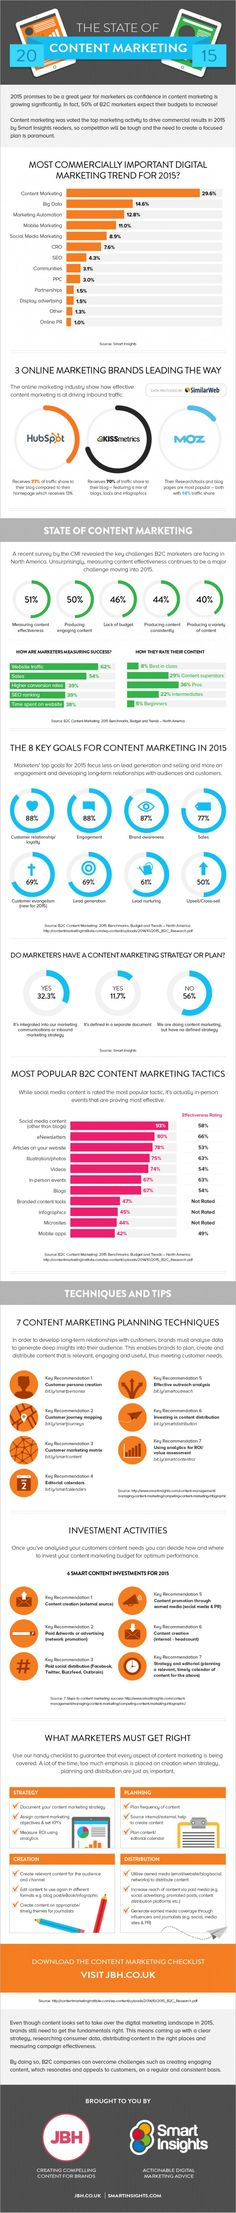 The State of Content Marketing in 2015 by Jane Hunt